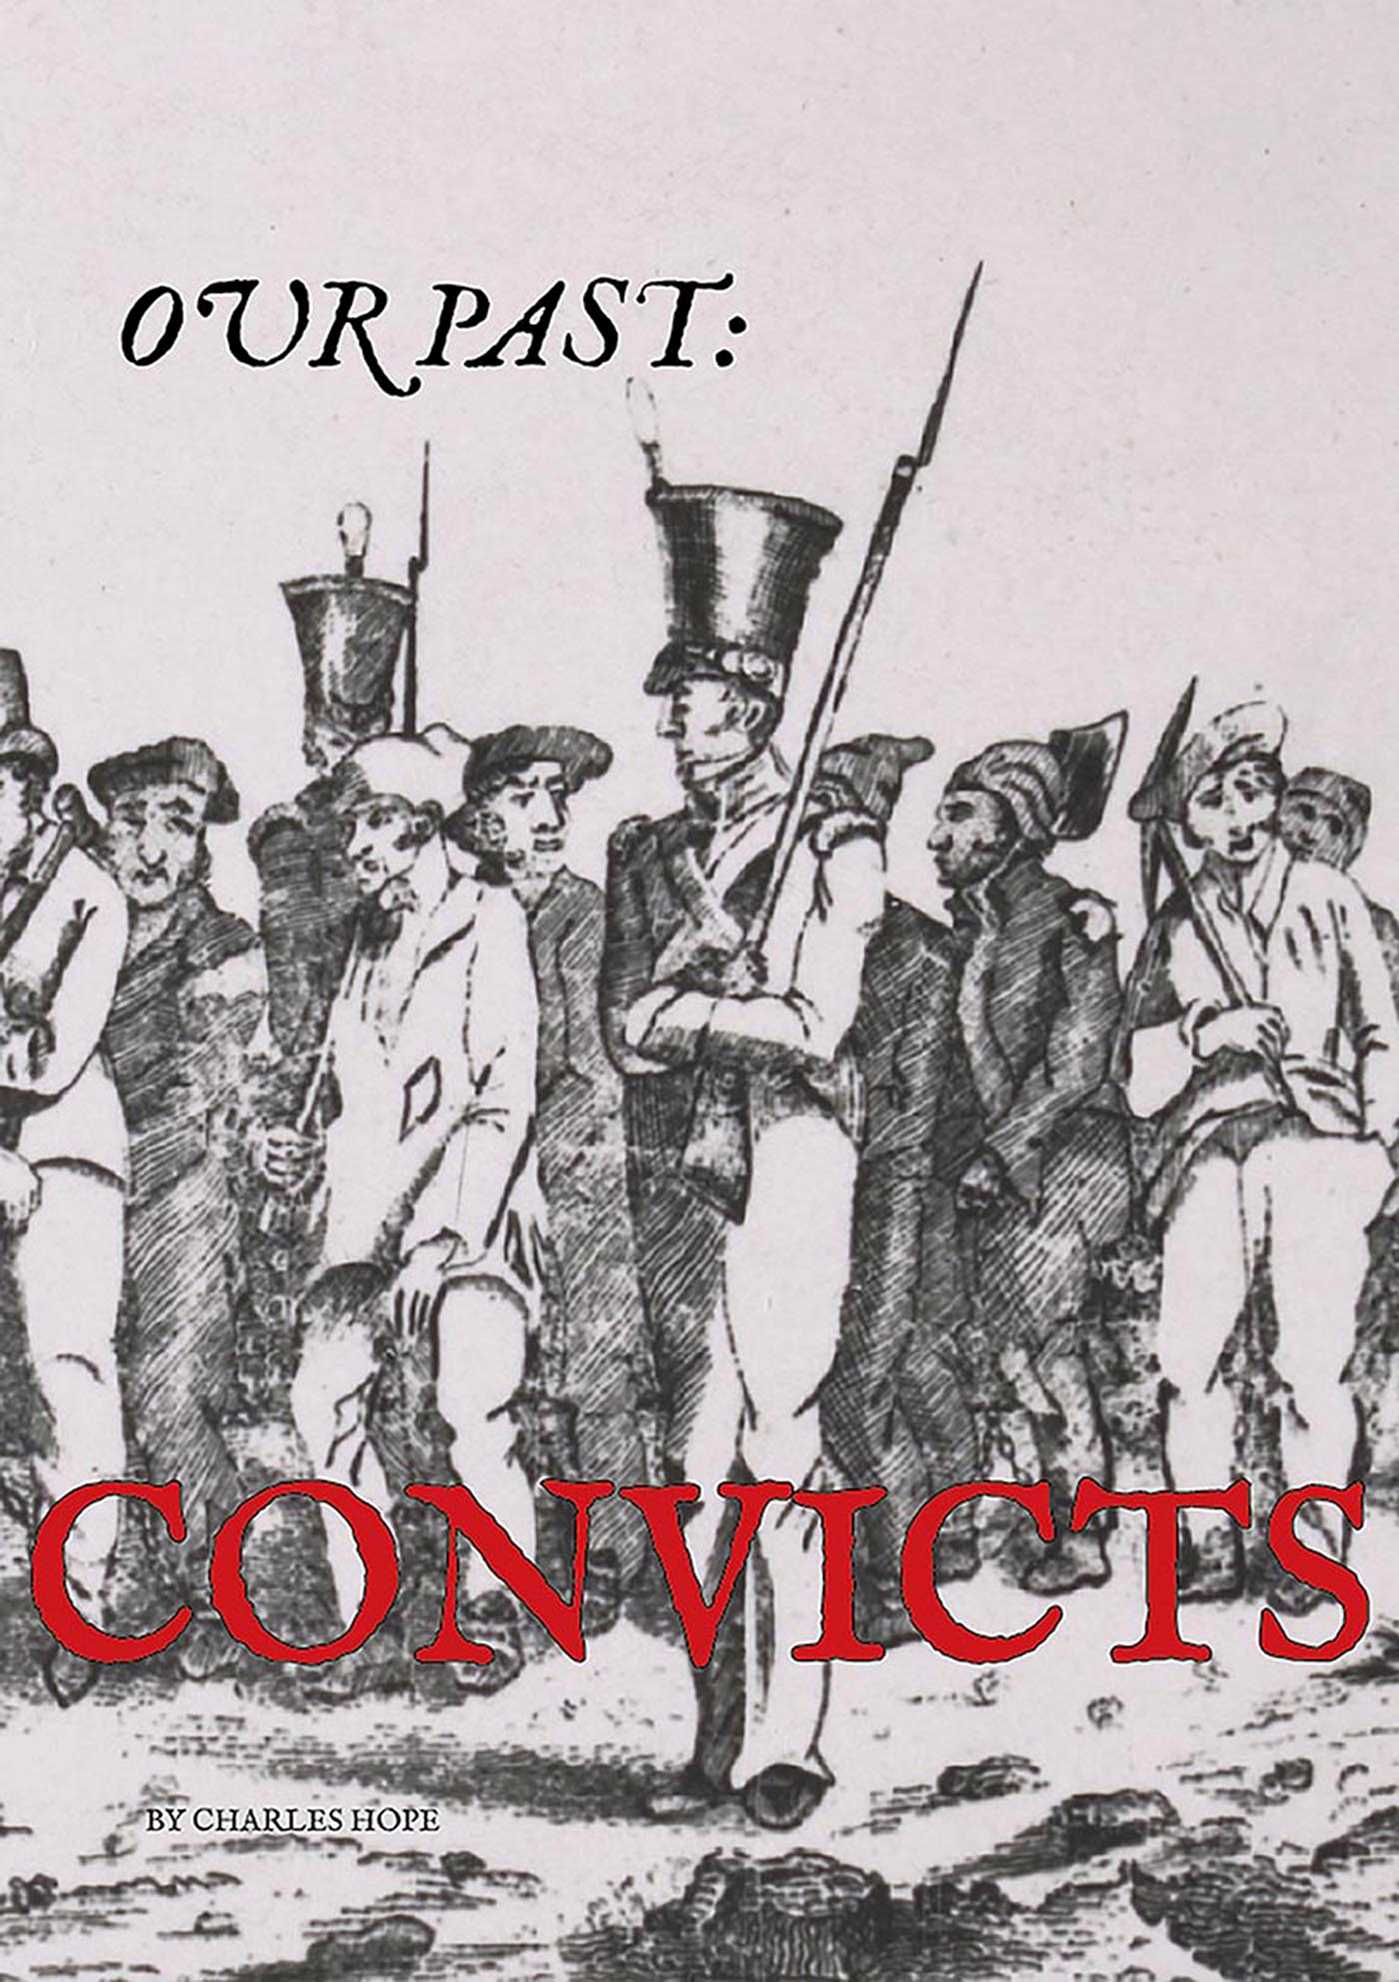 Convicts: Our Past